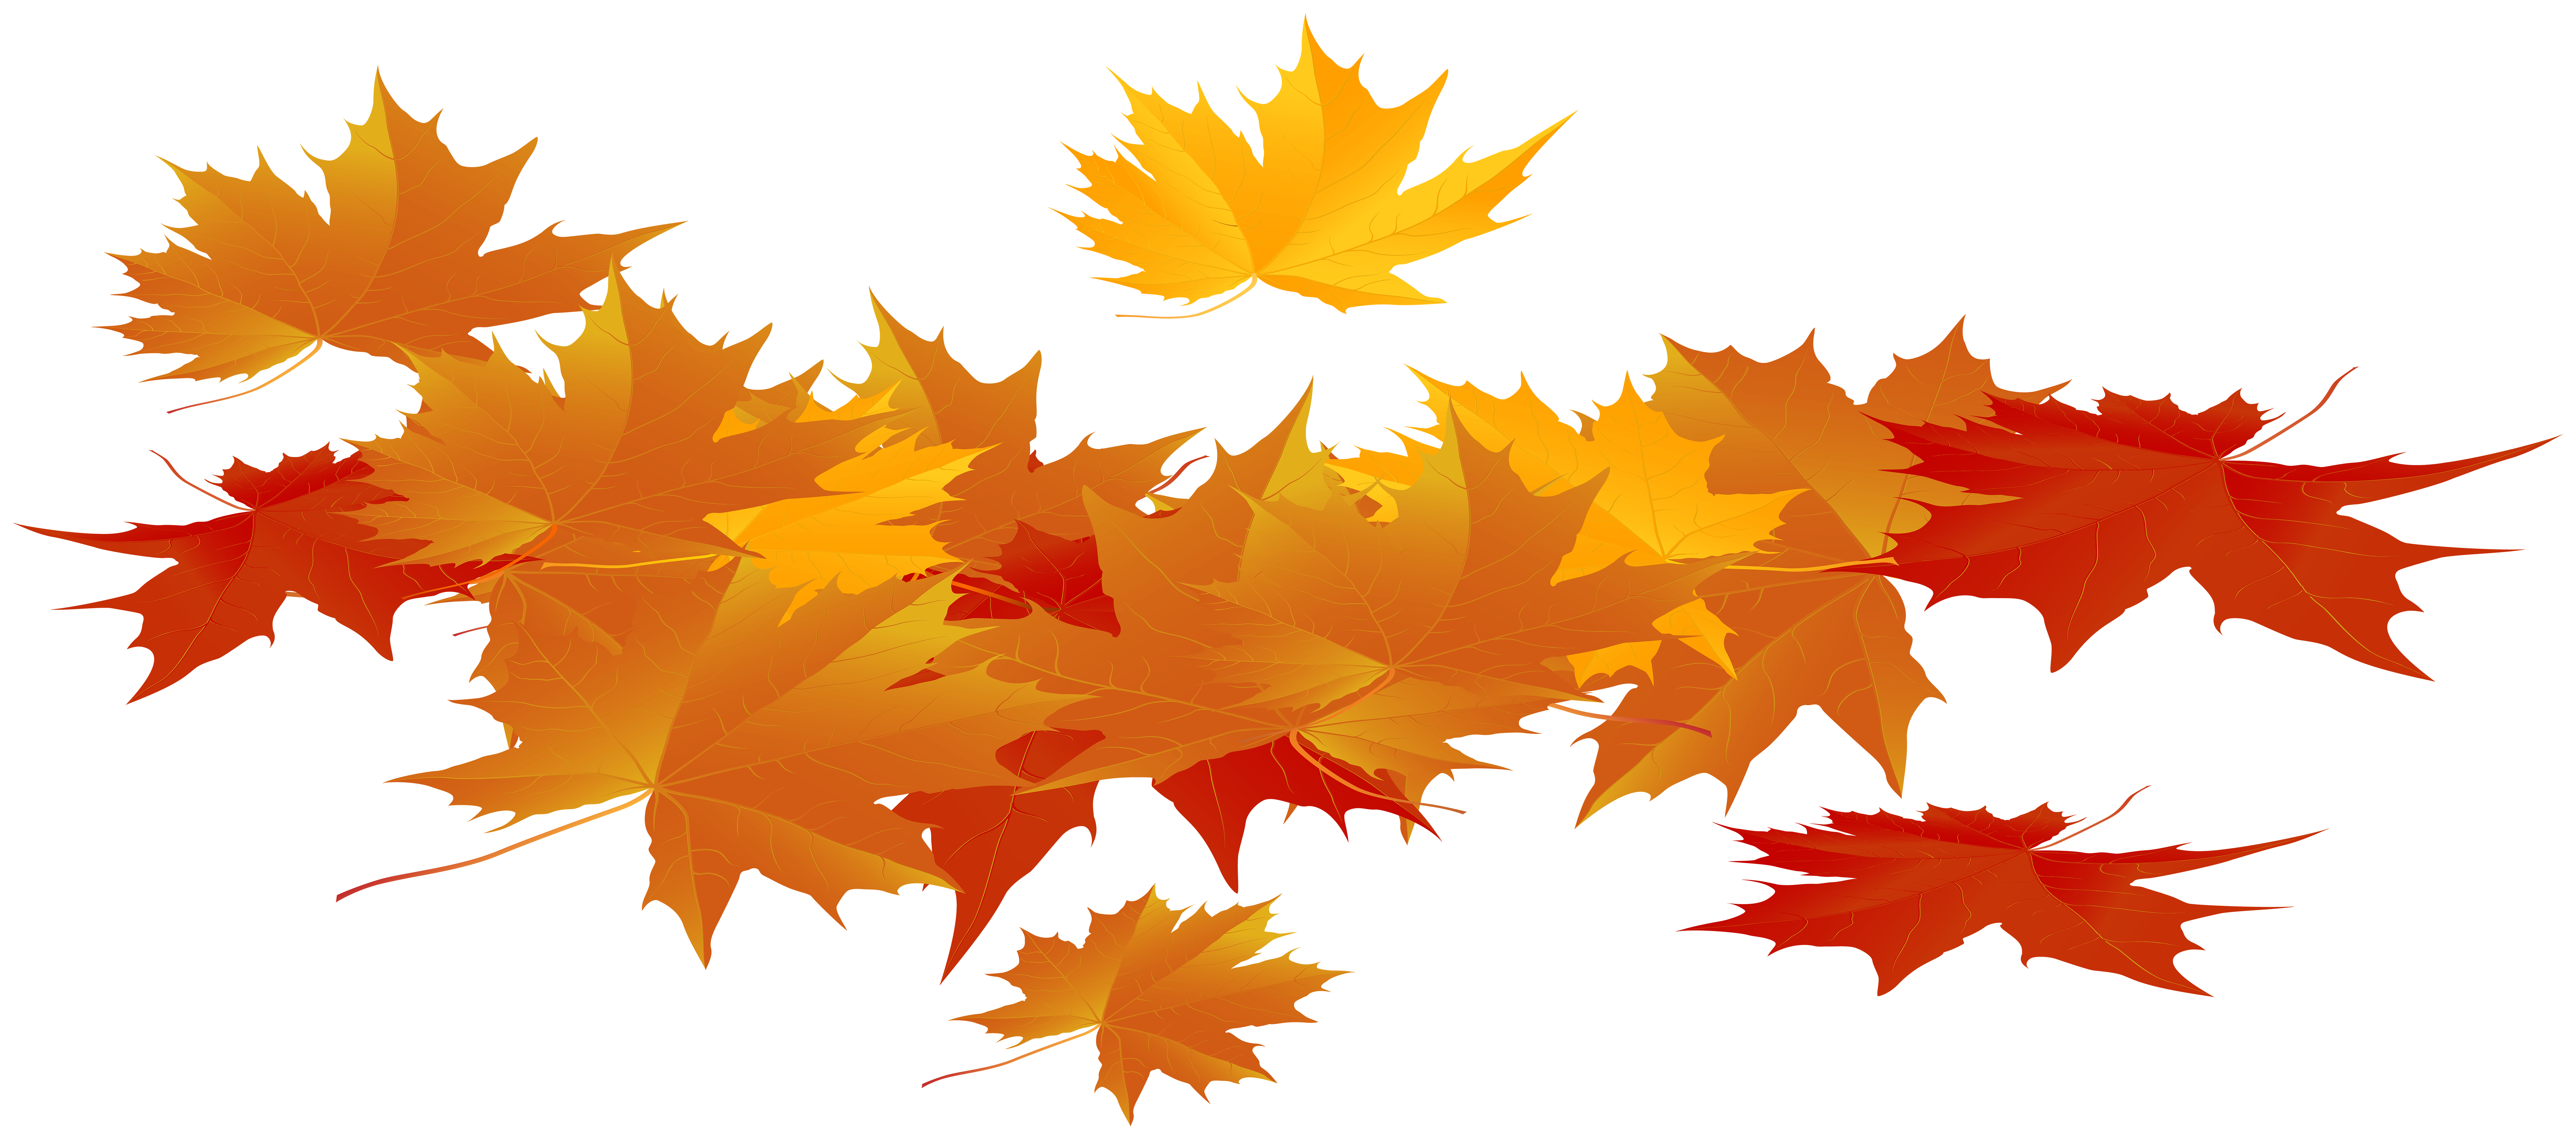 autumn leaves png 20 free Cliparts | Download images on ...